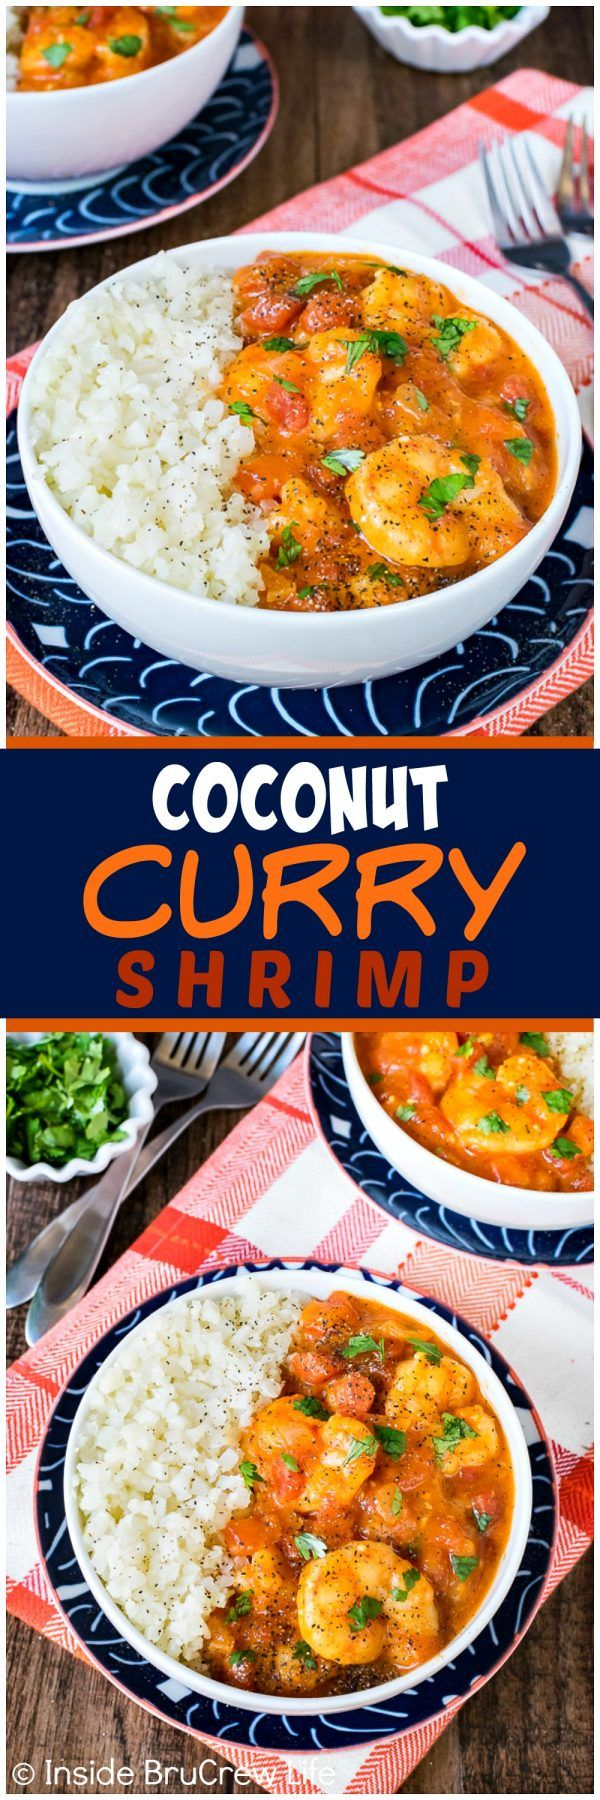 Coconut Curry Shrimp - this easy curry sauce is loaded with veggies and shrimp. This recipe can be made and serve in less than 30 minutes. Awesome healthy dinner for busy nights.  #dinner #leanandgreen #shrimp #healthy #cauliflowerrice #curry